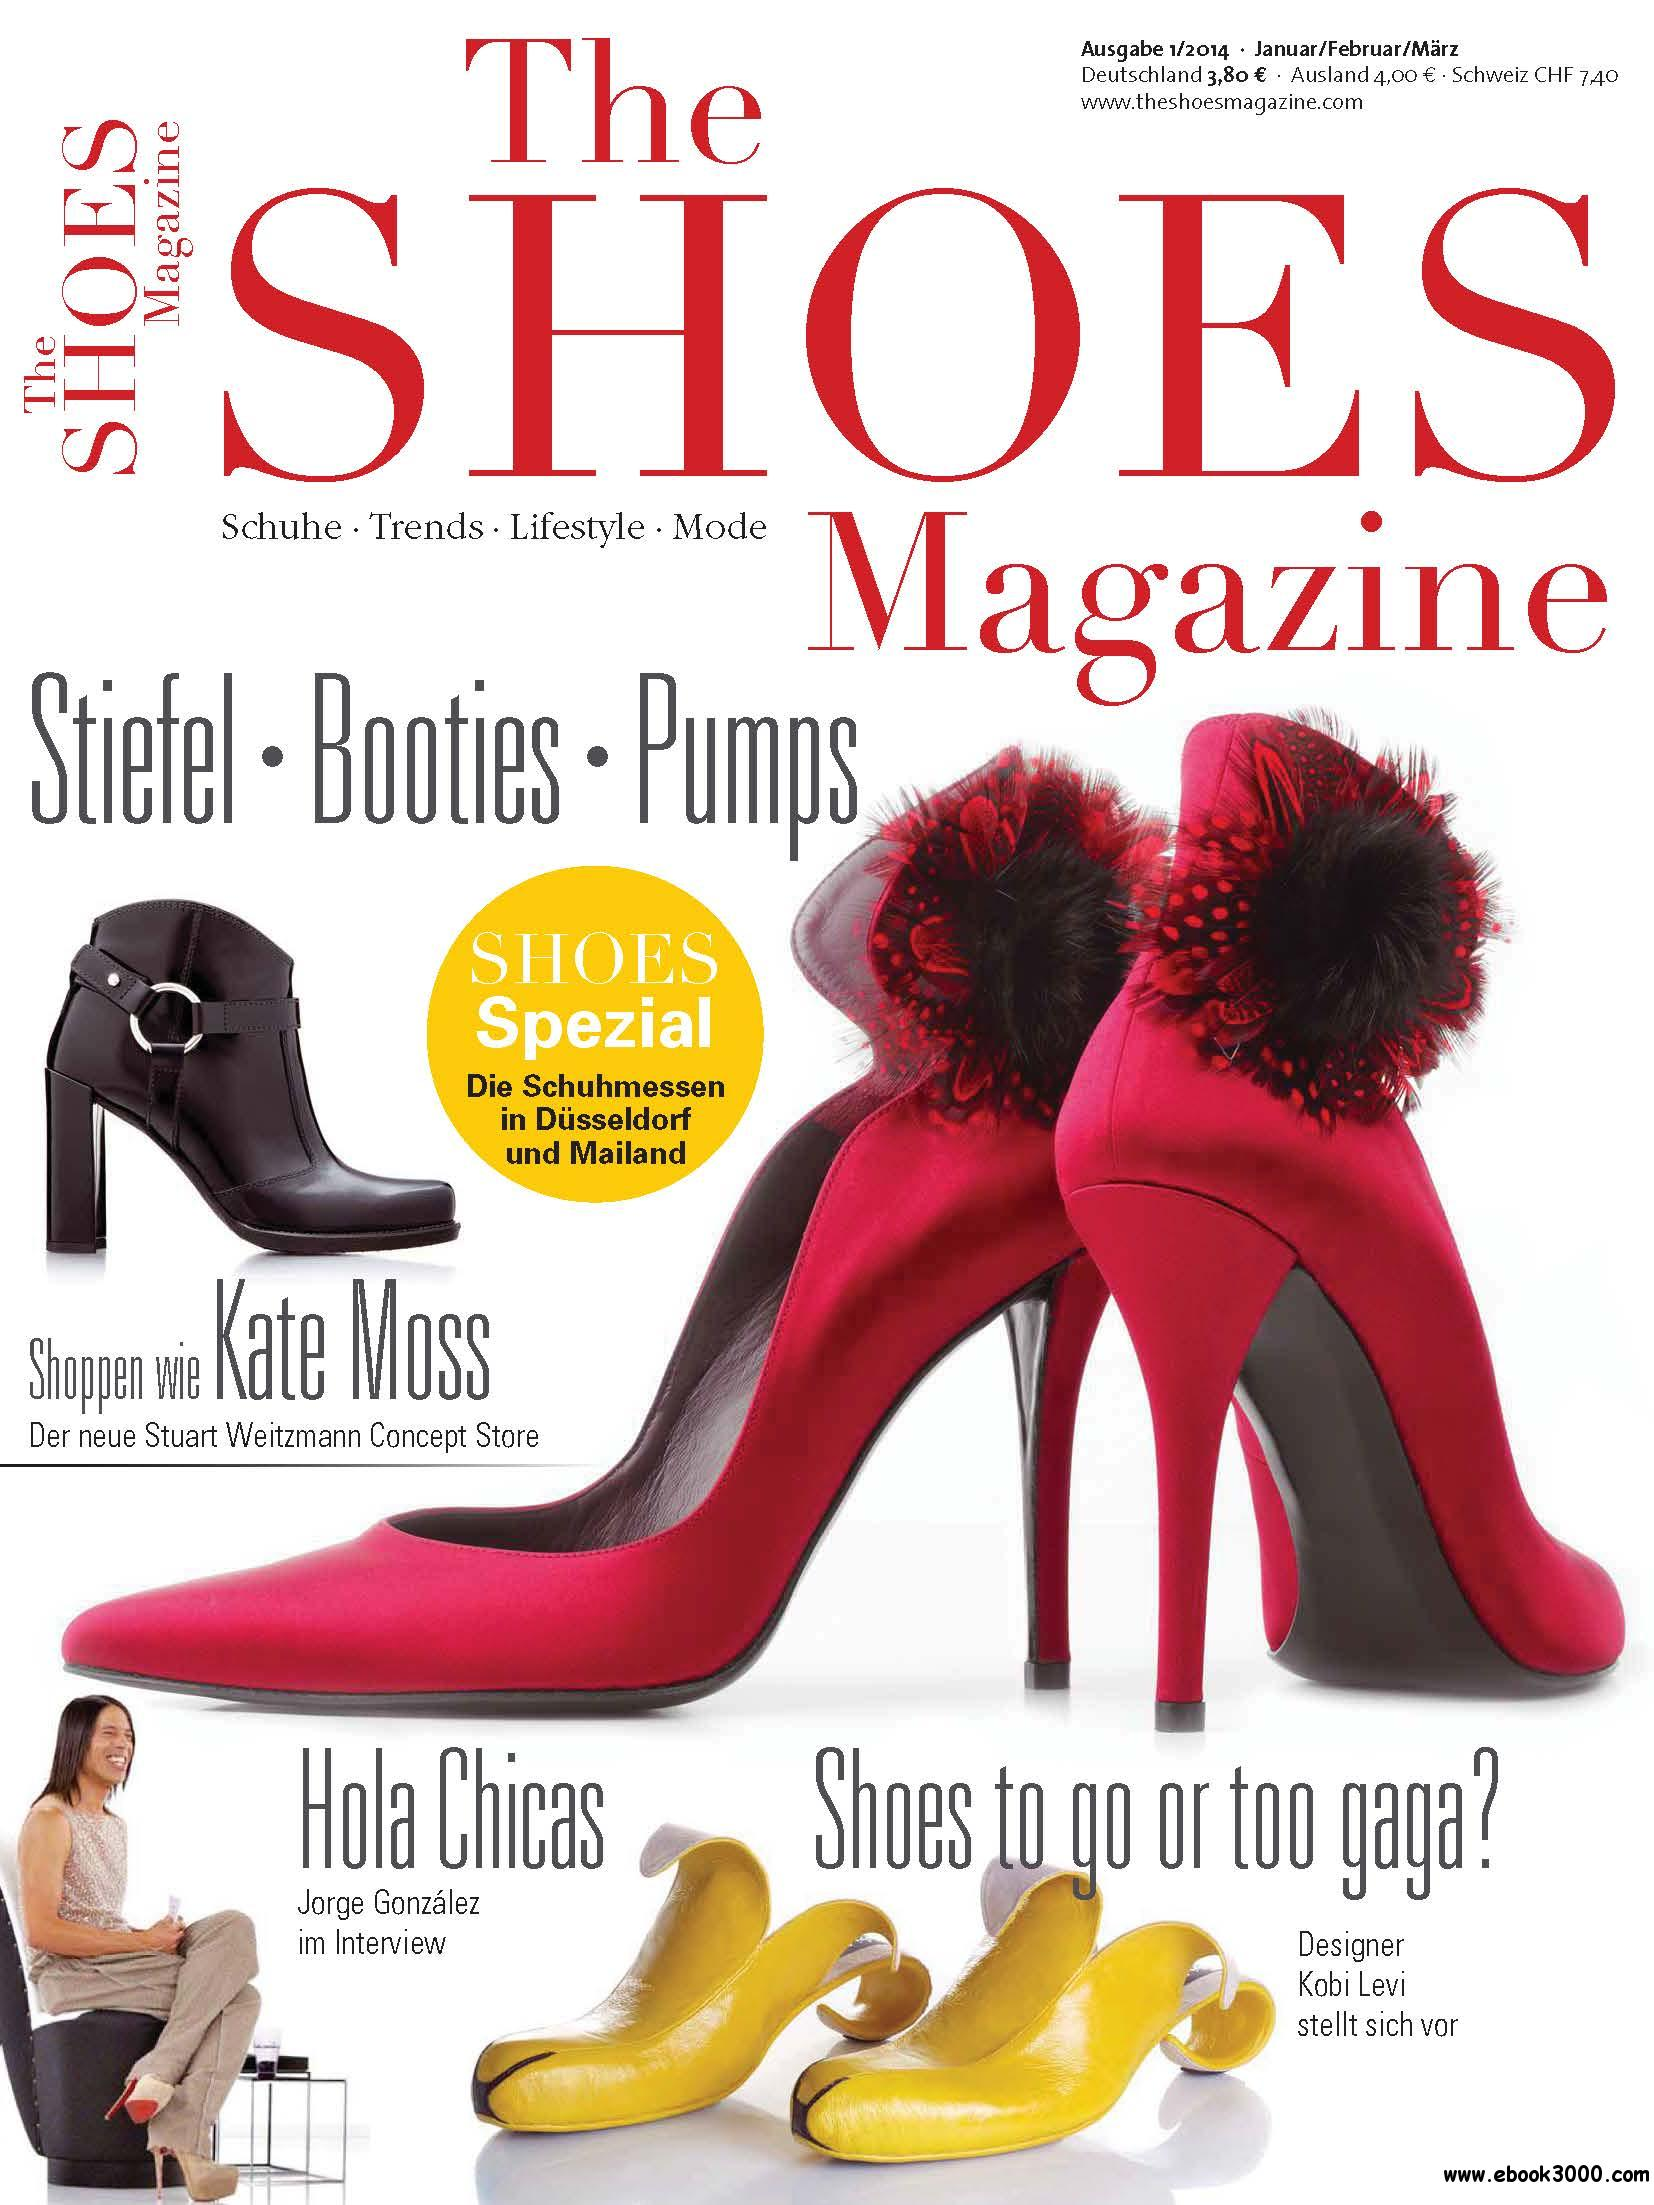 The Shoes Magazine - Magazin fur Schuhmode Januar/Februar/Marz 01/2014 free download